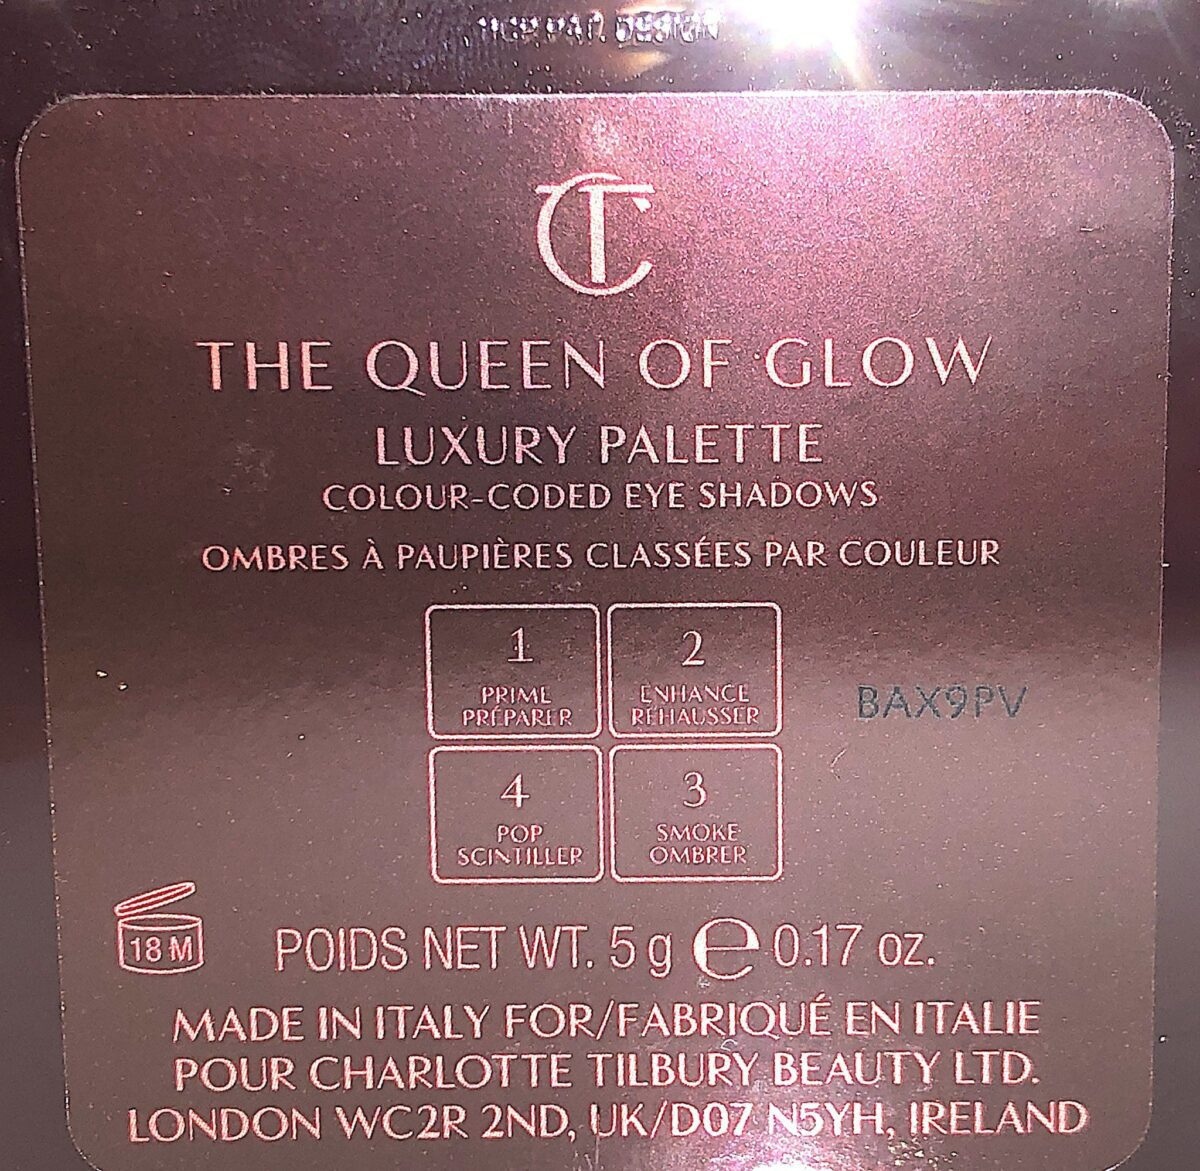 THE BACK OF THE QUEEN OF GLOW COMPACT